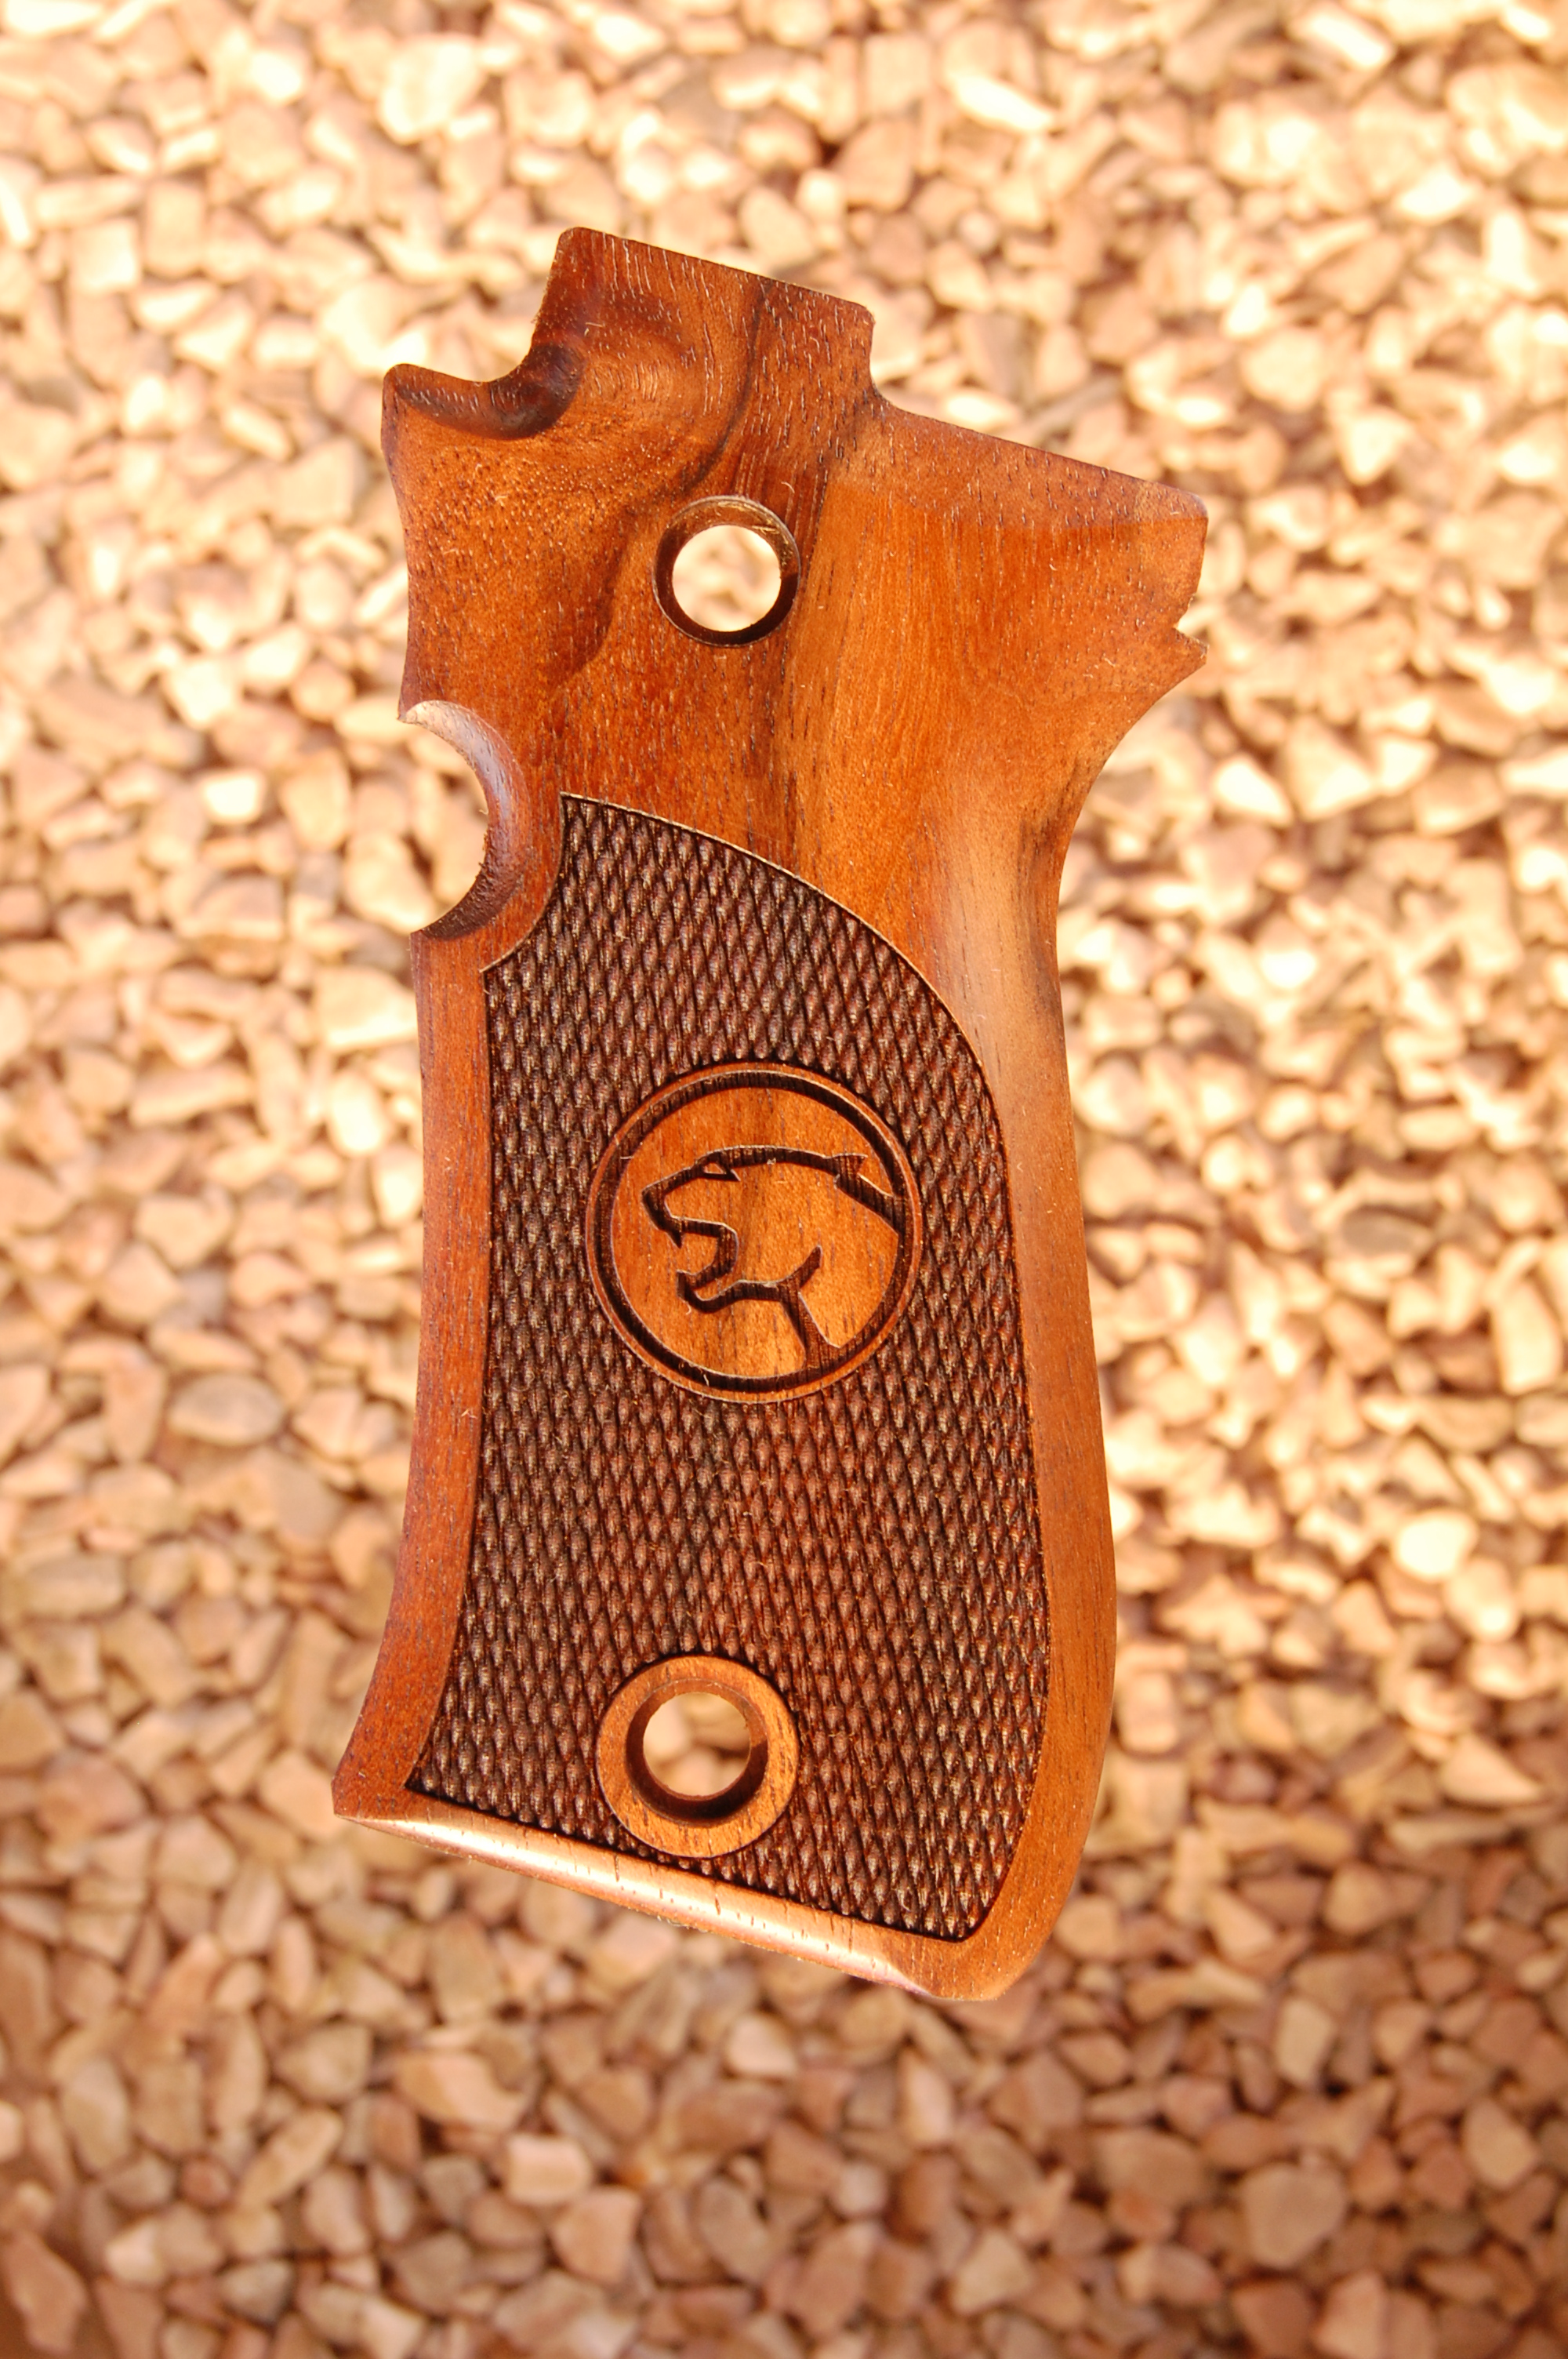 BERETTA 85/87 grips (checkered+cougar) - full size